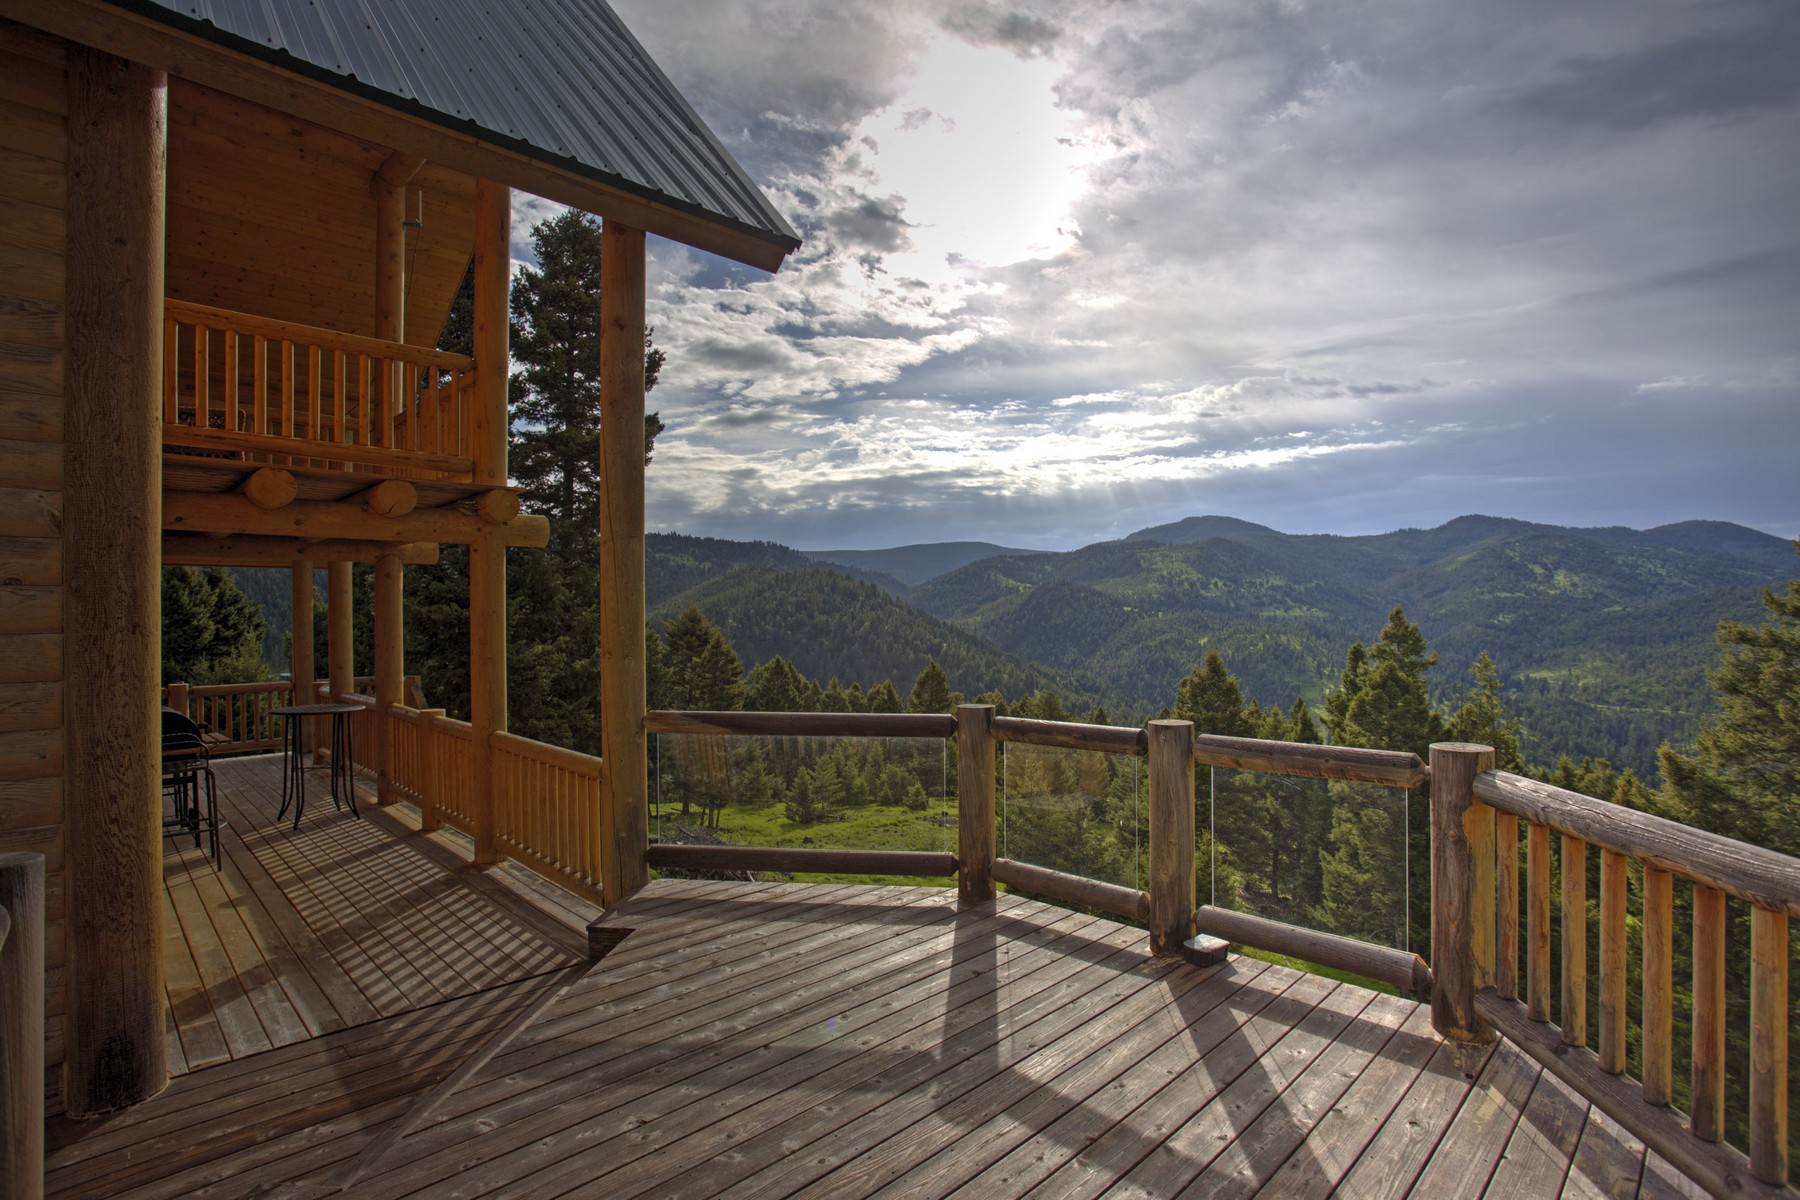 Single Family Homes for Sale at 139 Bristlecone Road Gold Creek, Montana 59733 United States